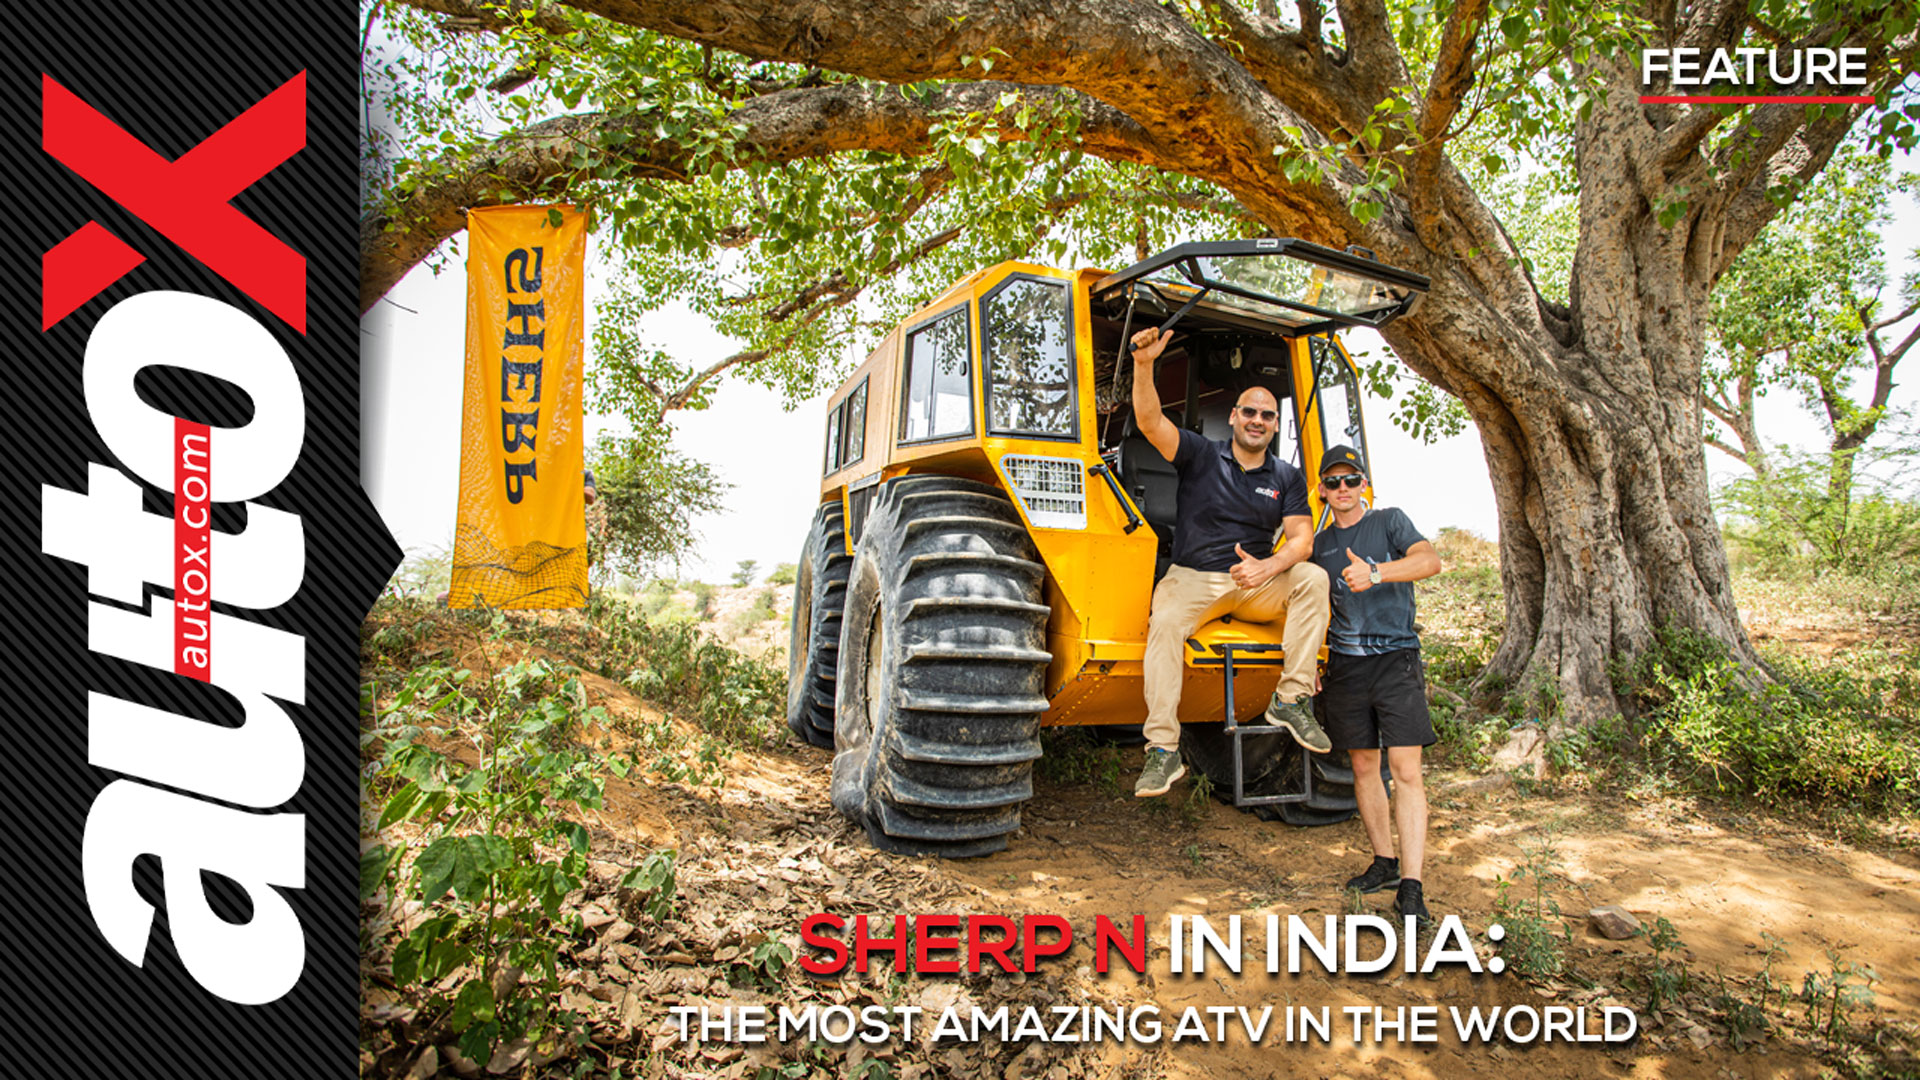 SHERP N in India: The most amazing ATV in the World   Feature   autoX